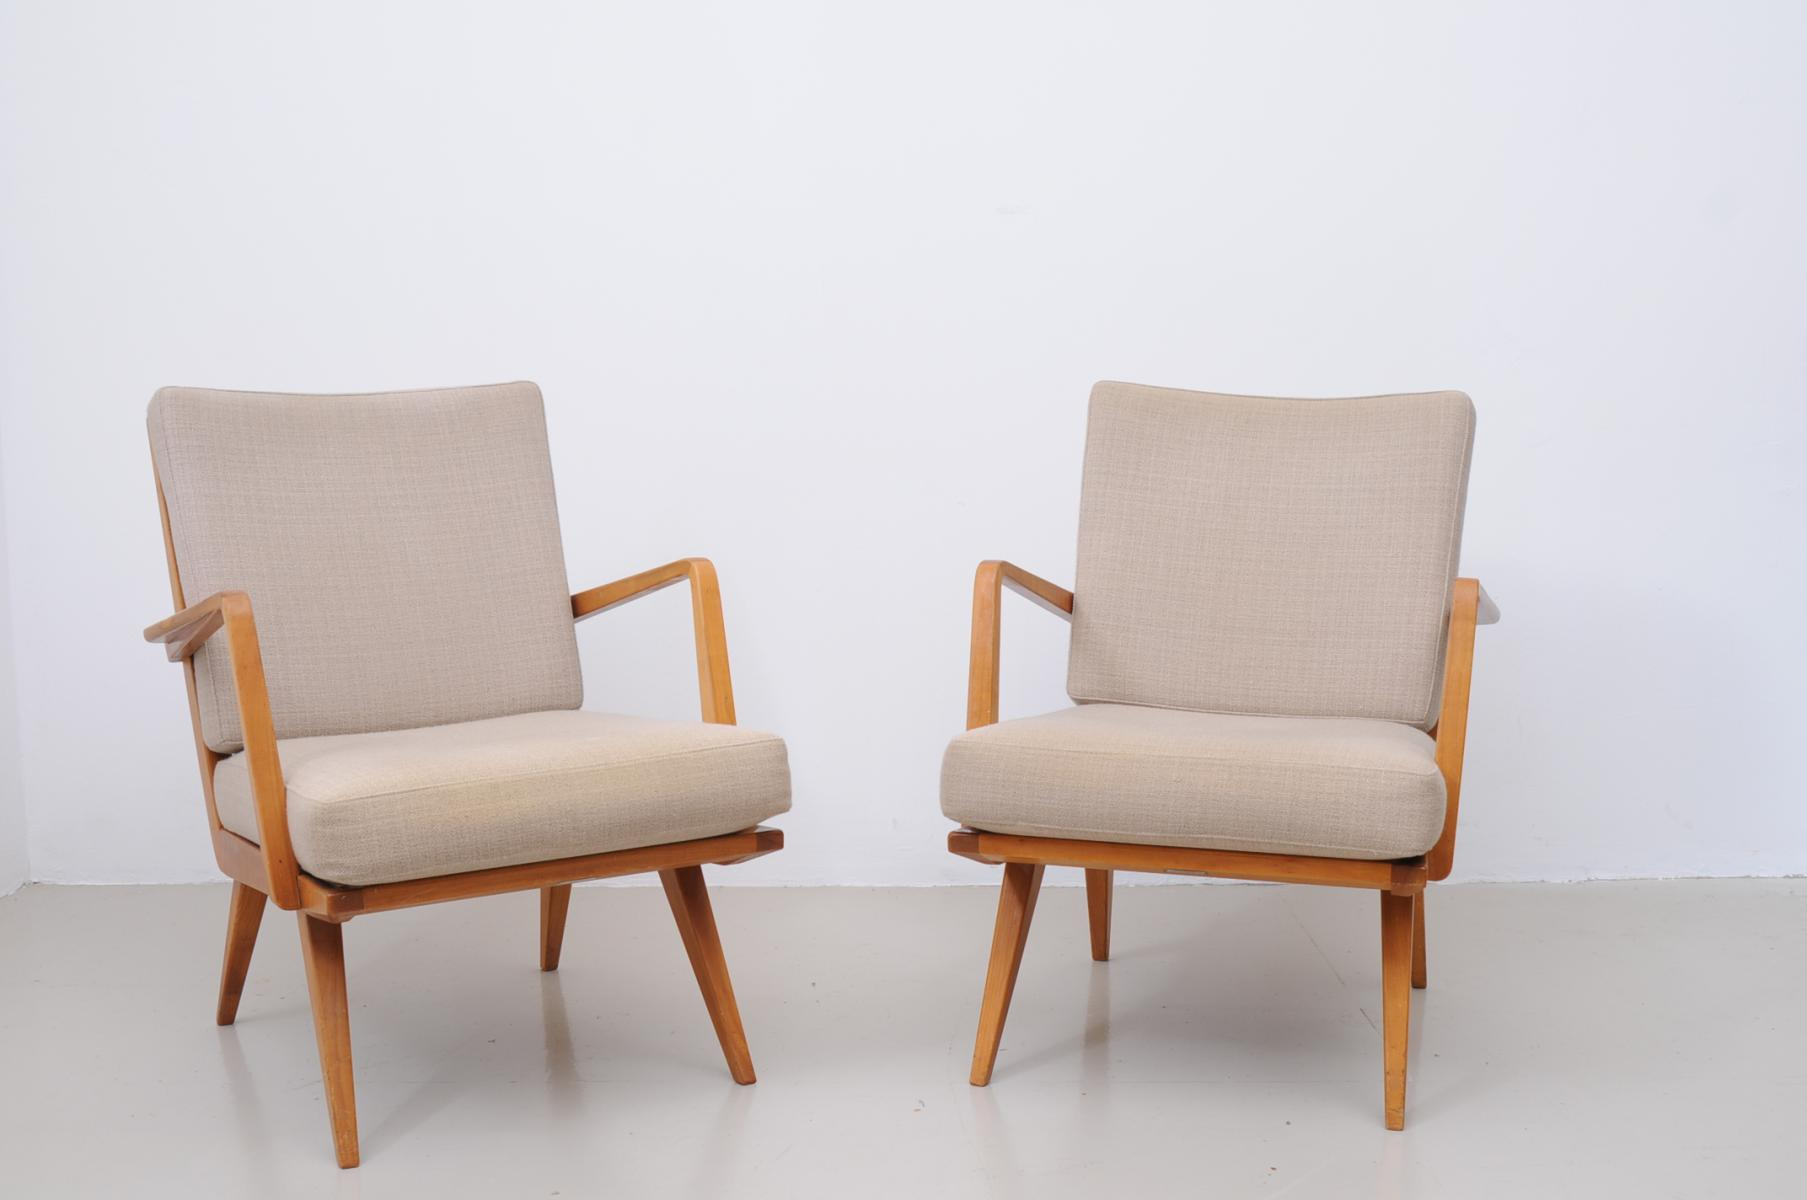 ideas-arm-chairs-remarkable-target-zuma-armchair-armchairs-uk-online-cover-single-next-ikea-mid-century-from-knoll-set-of.jpg